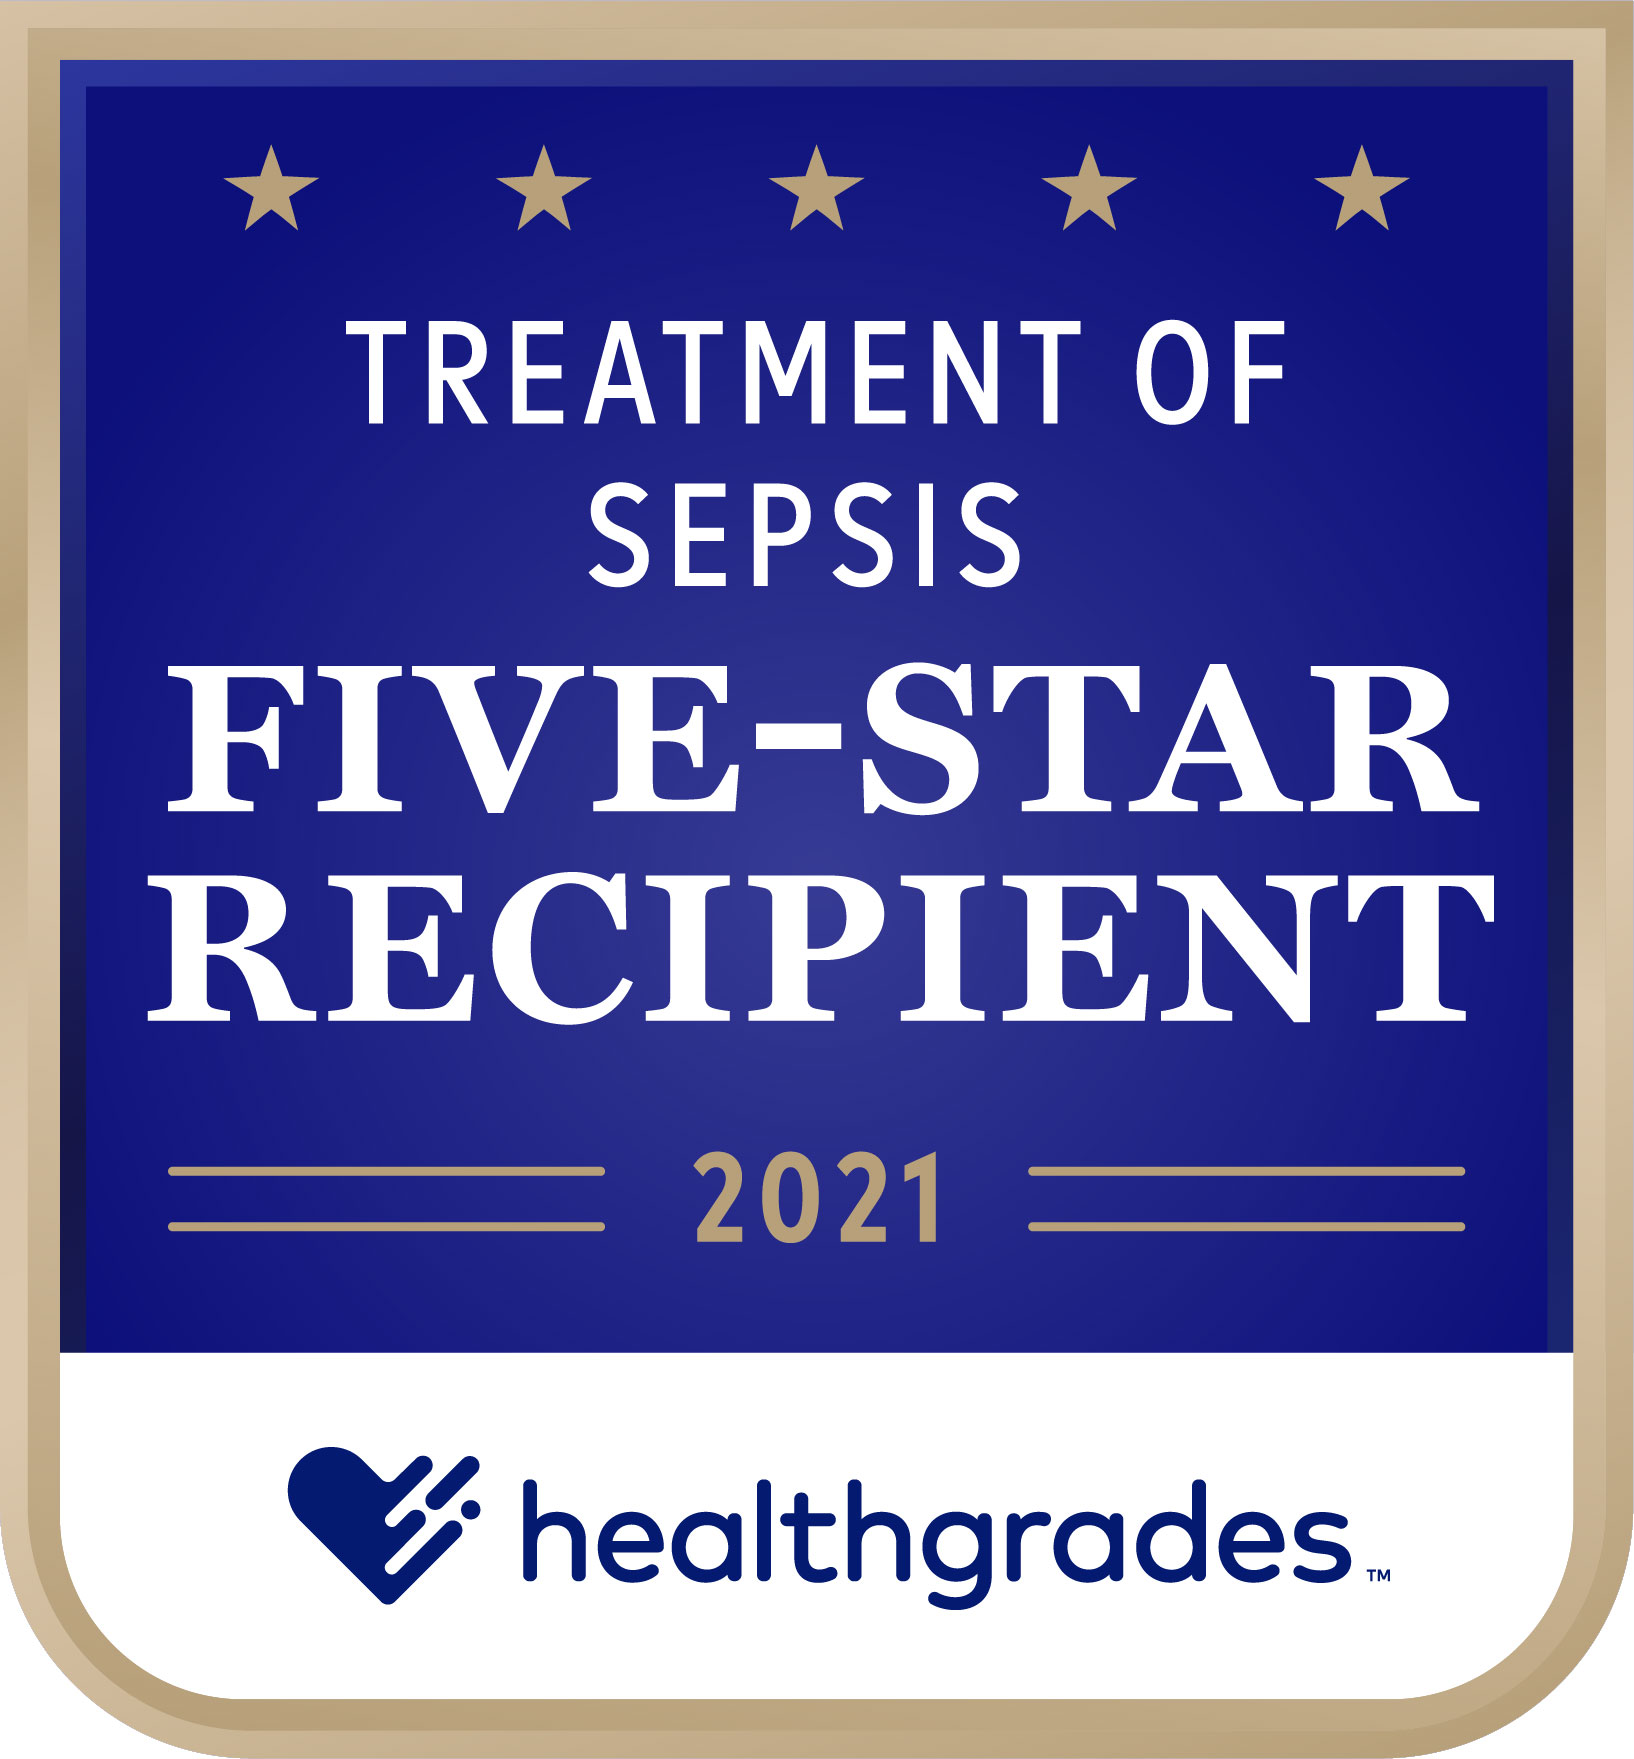 sepsis treatment award